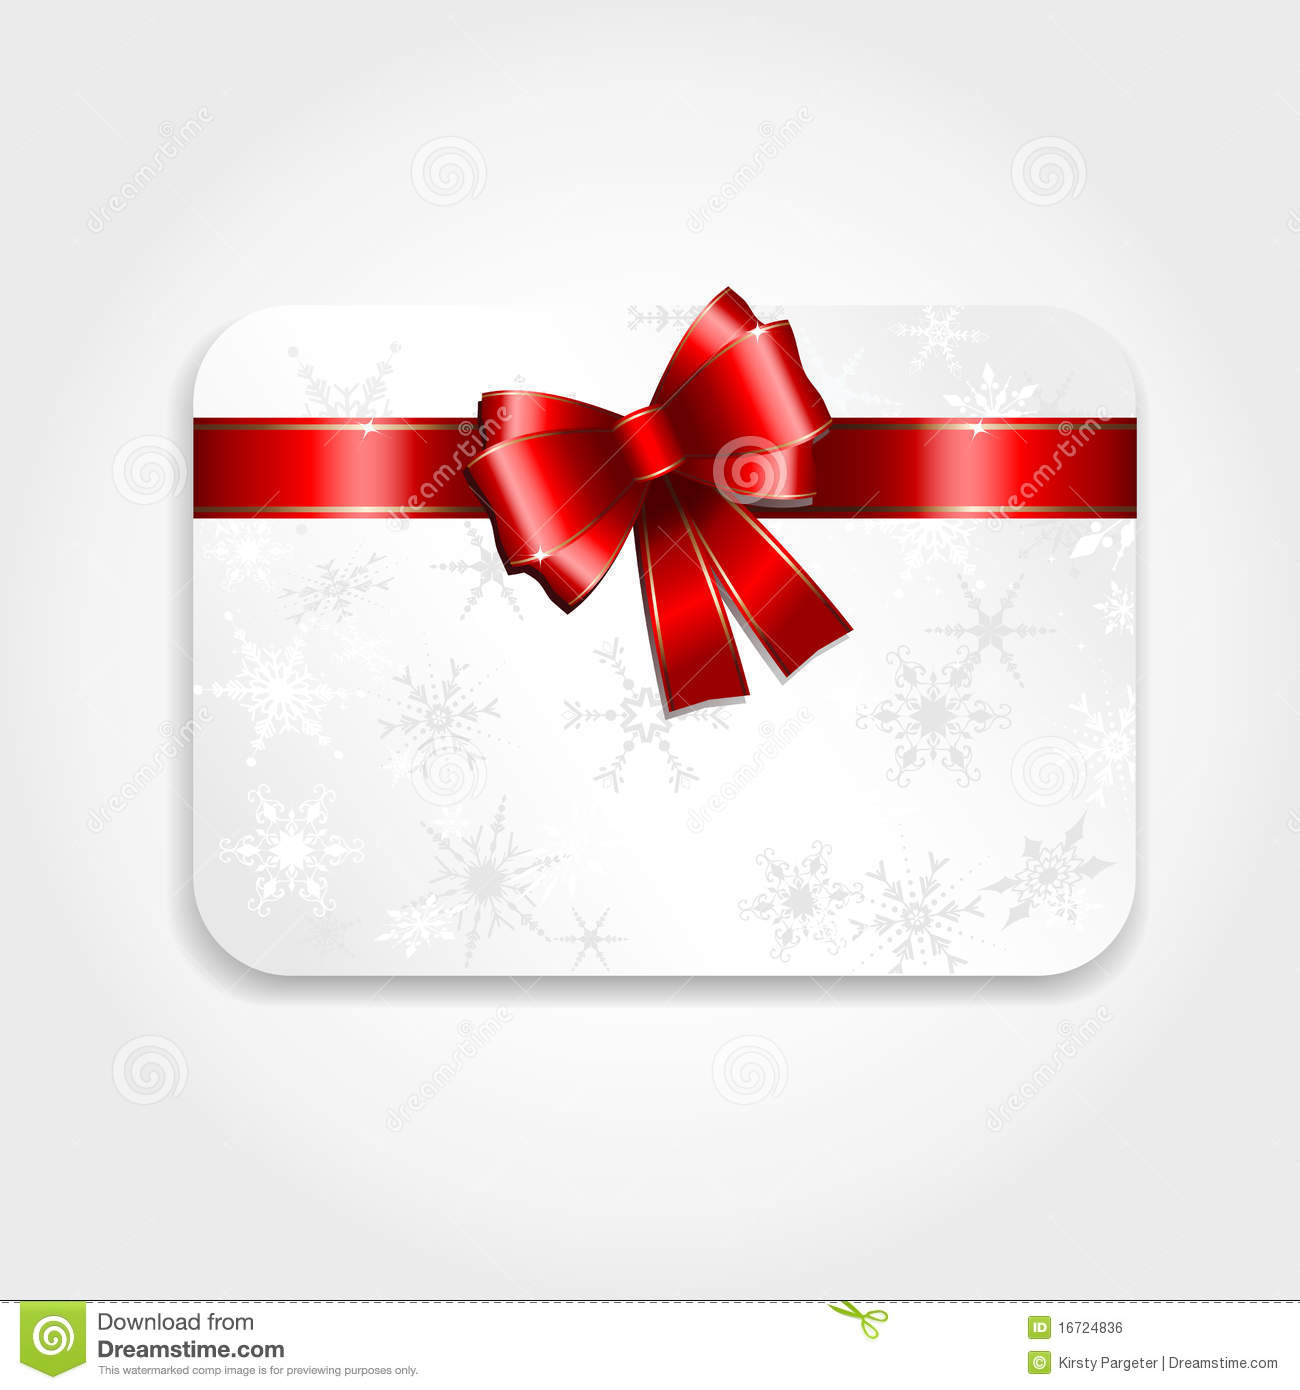 Christmas Gift Card Stock Vector Illustration Of Gift 16724836